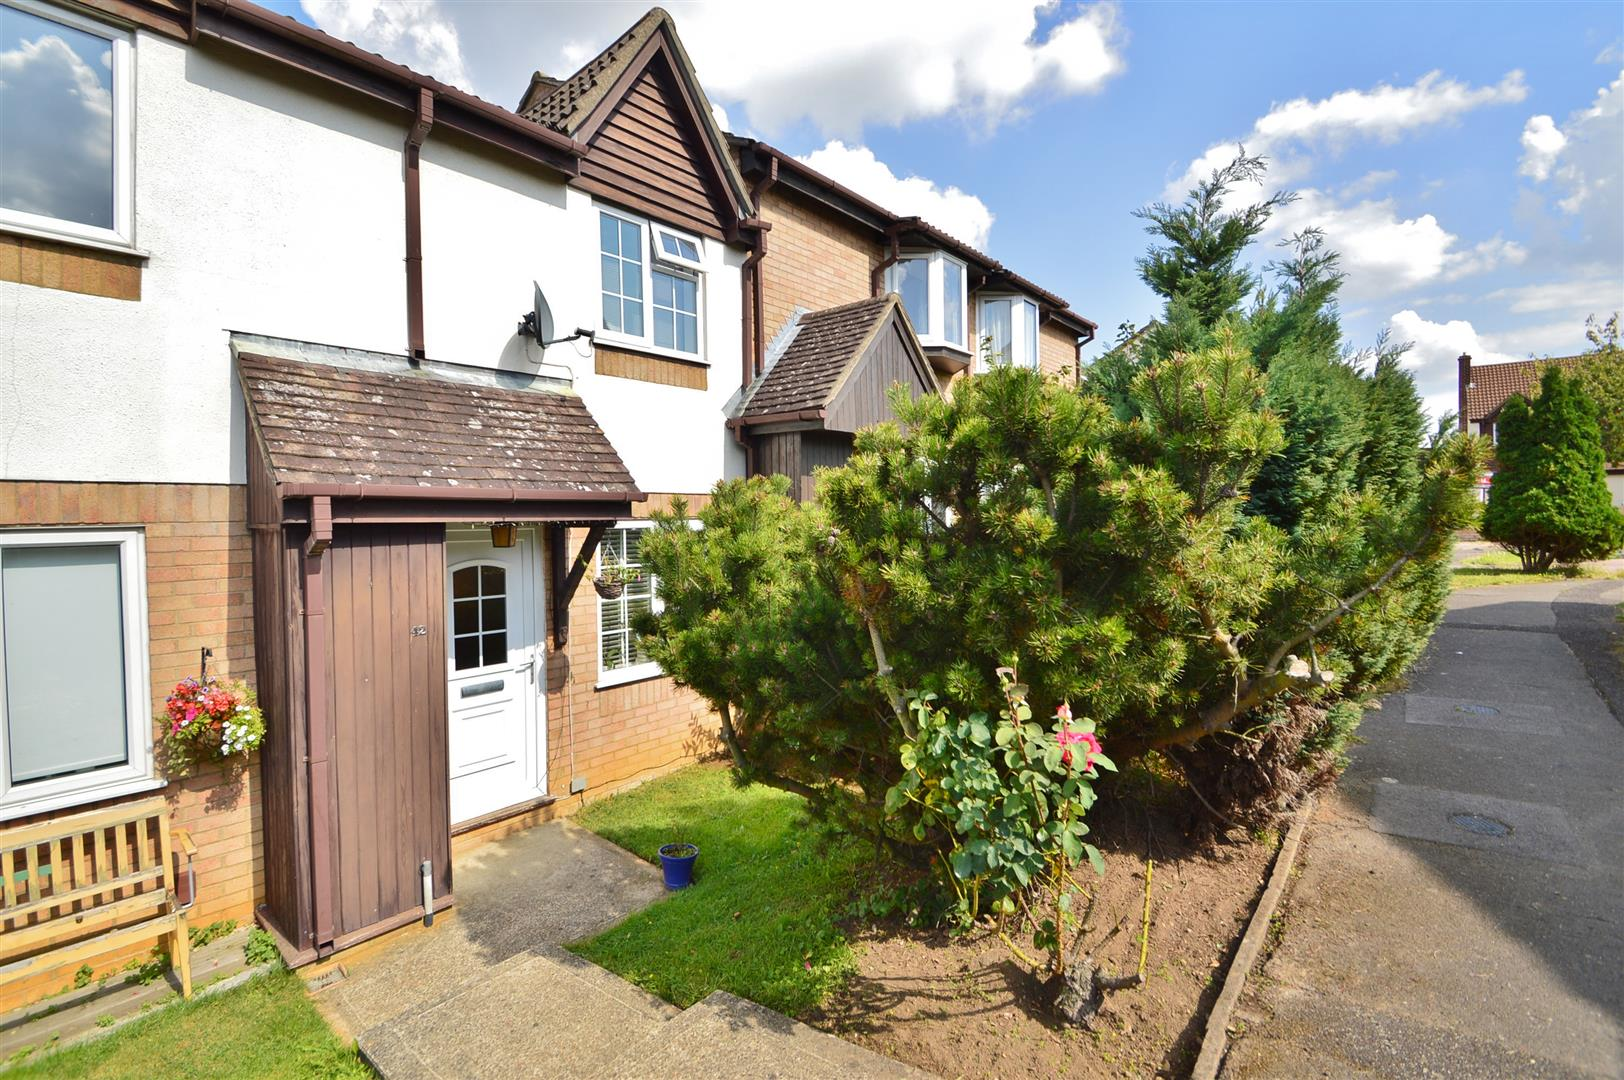 2 Bedrooms Terraced House for sale in Betjeman Close, Larkfield